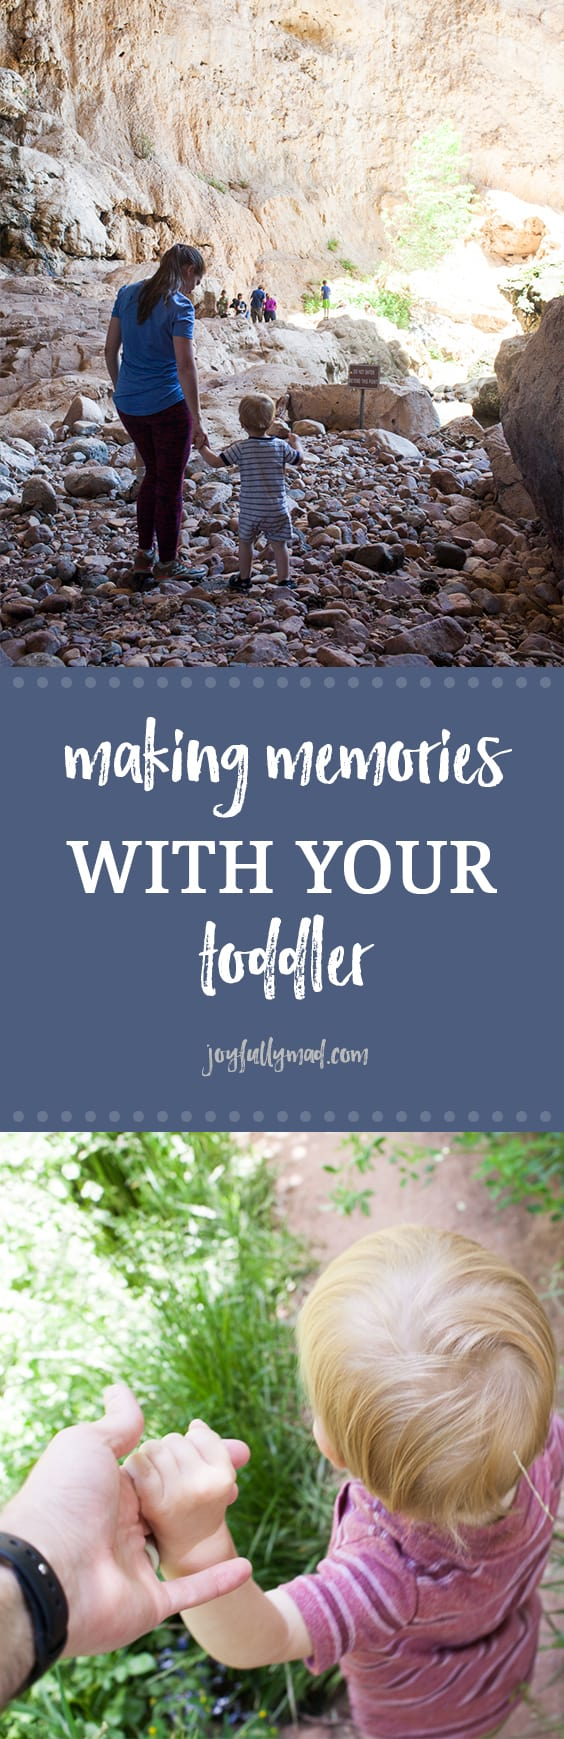 We all have memories of various adventures with our parents growing up. It's not always easy making fun memories with all of the life responsibilities that we all have, but when we do get the time to intentionally make memories with our kids, there are a few things we can do to make those memories lasting!